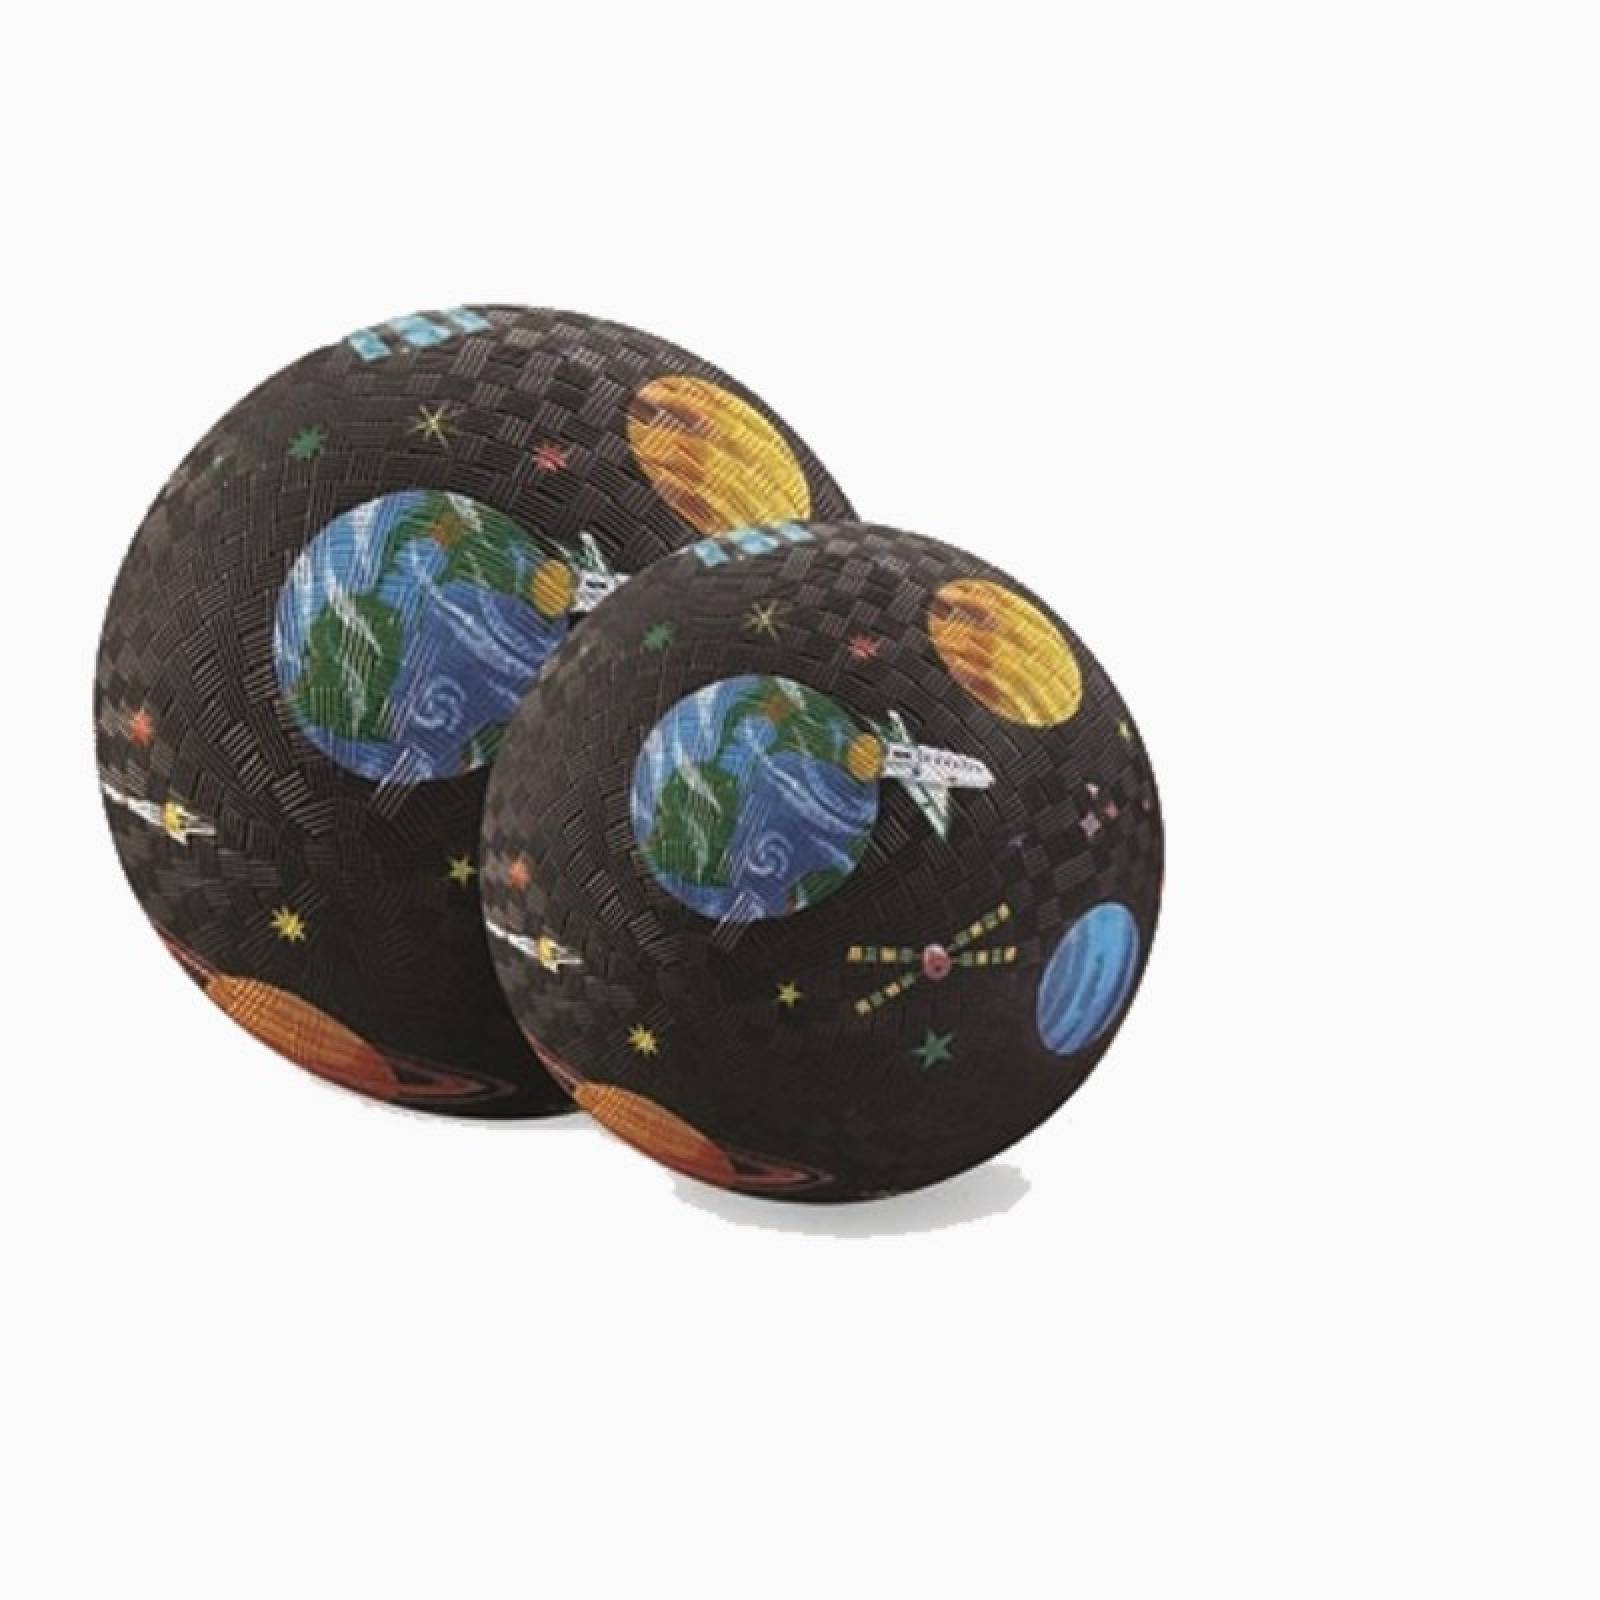 Space Exploration - Small Rubber Picture Ball 13cm